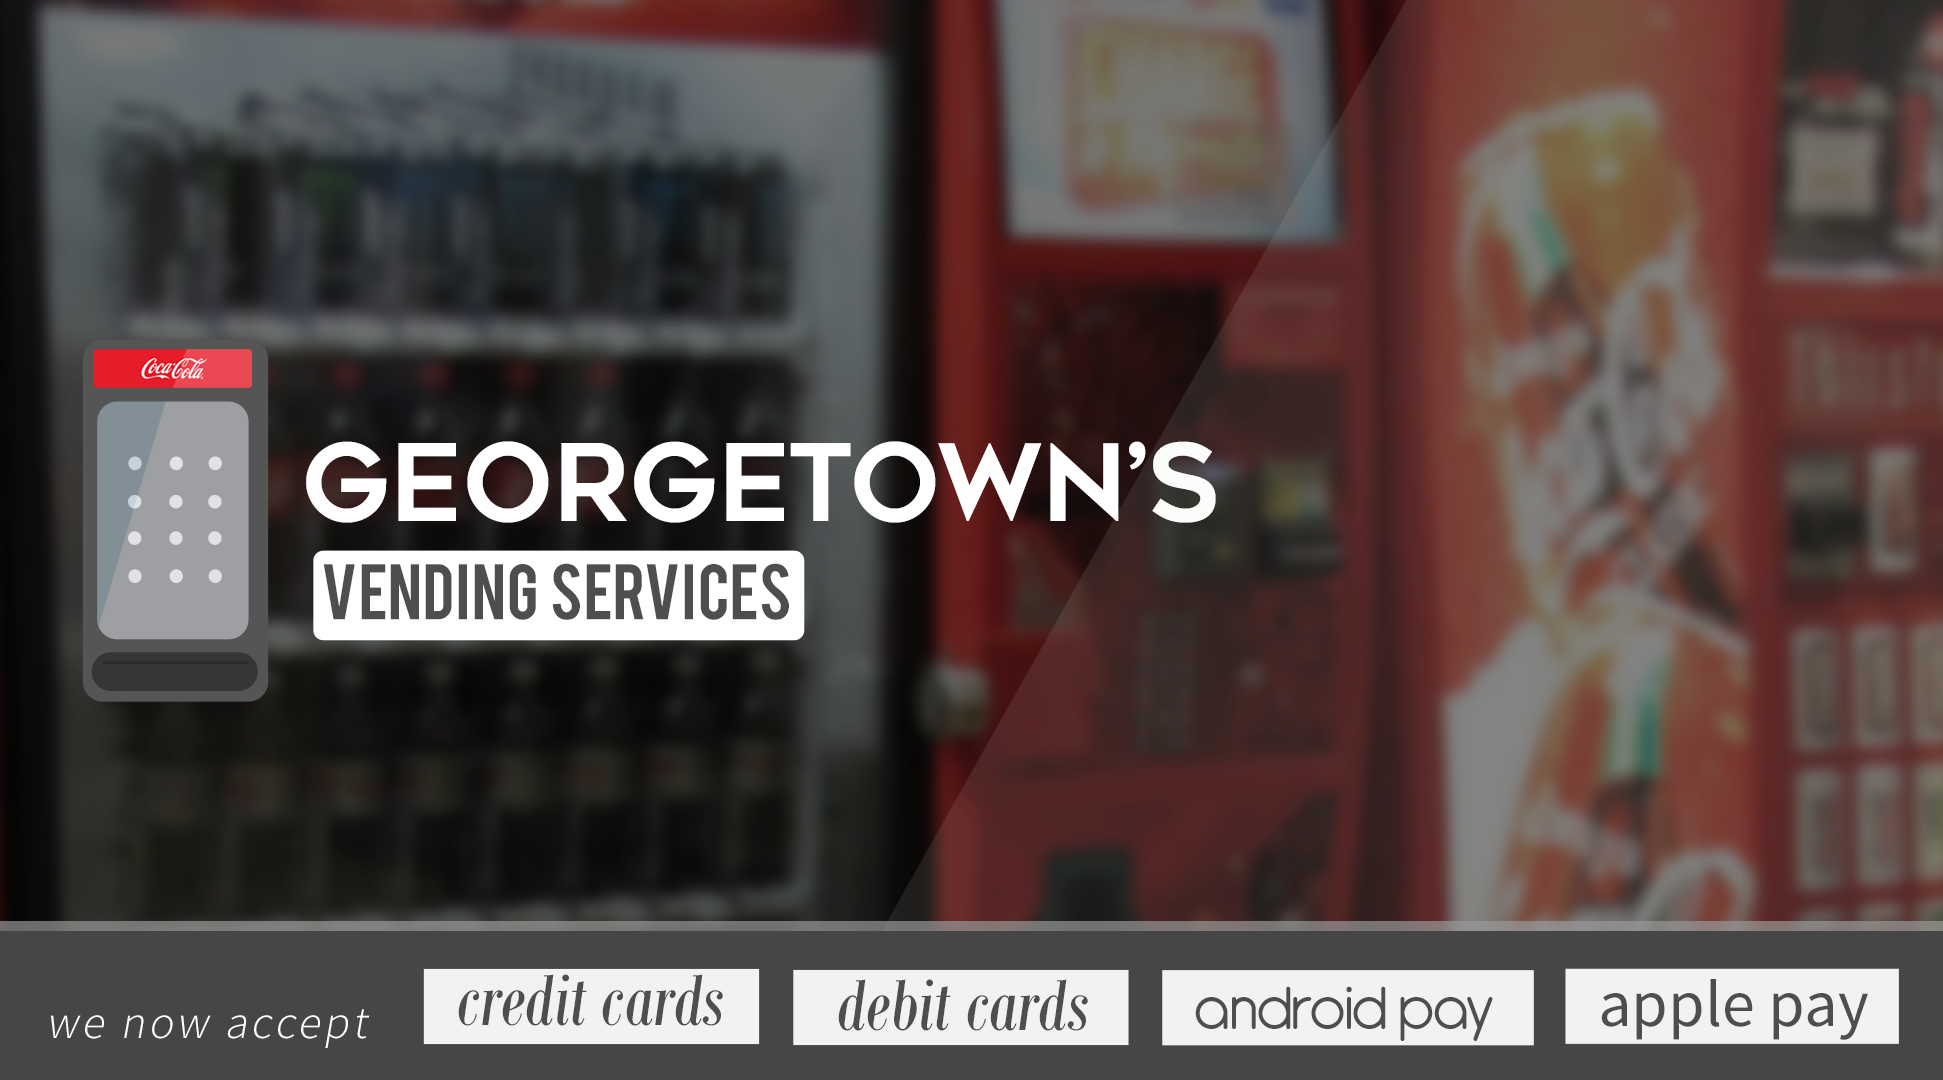 Georgetown Vending Services.  We now accept credit cards, debit cards, android pay, apple pay.